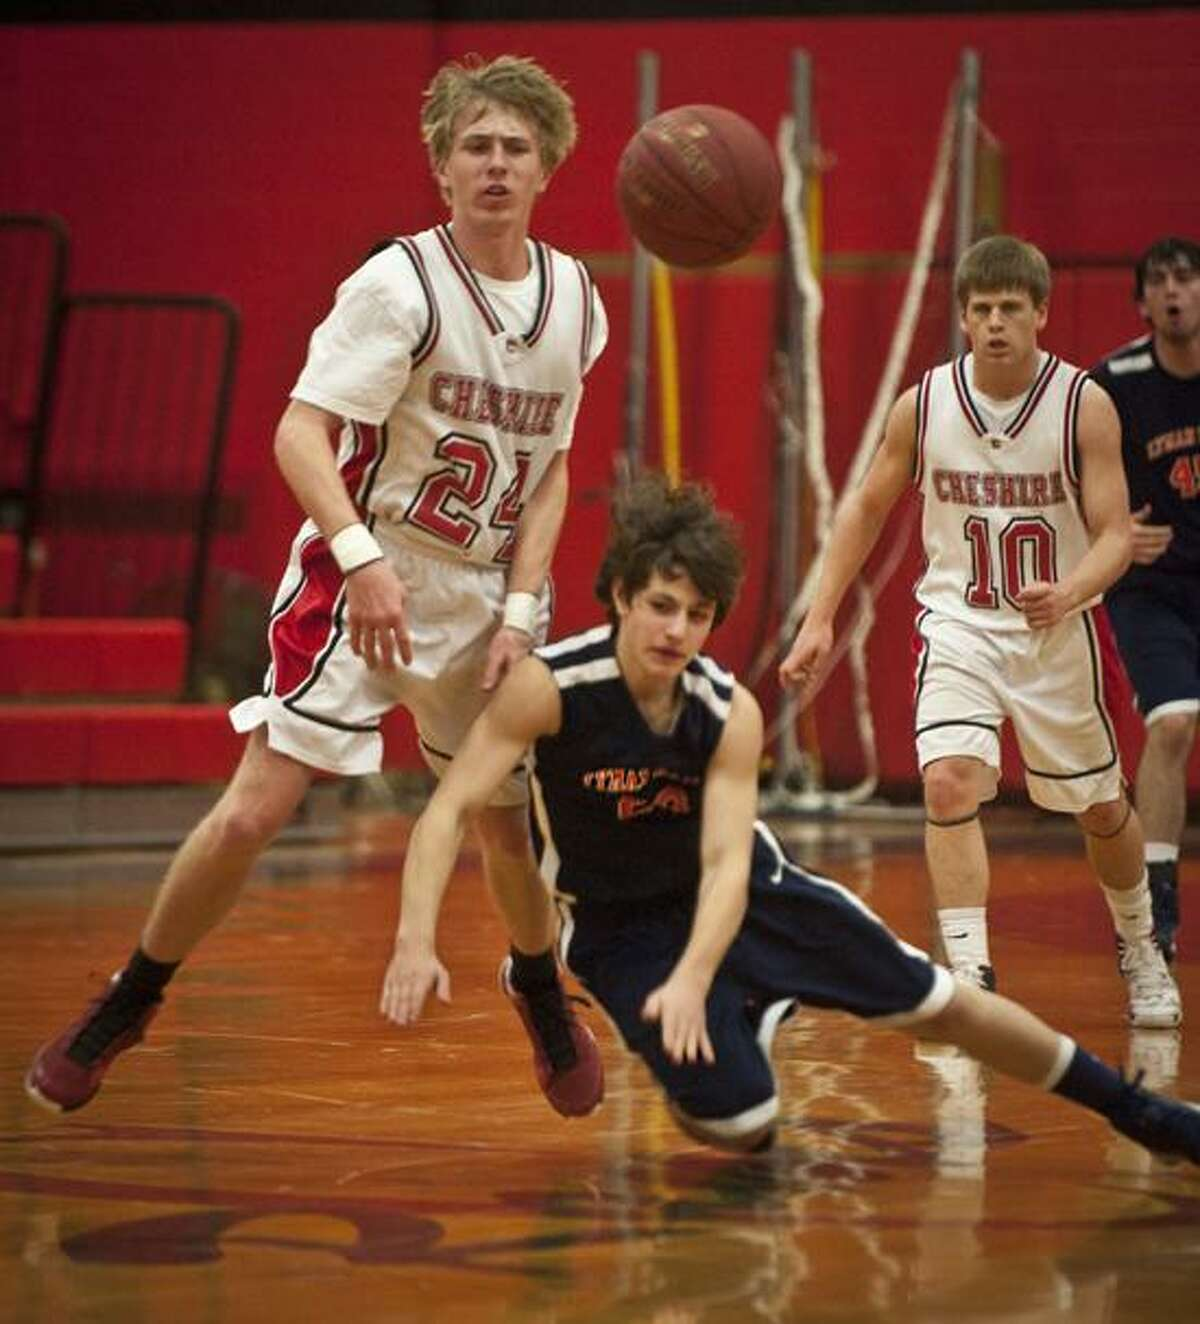 SPORTS-Lyman Hall's Eric Beardsley looses his footing, and the ball in 1st half action at Cheshire. At left is Ram's Kevin Dietrich. Melanie Stengel/Register